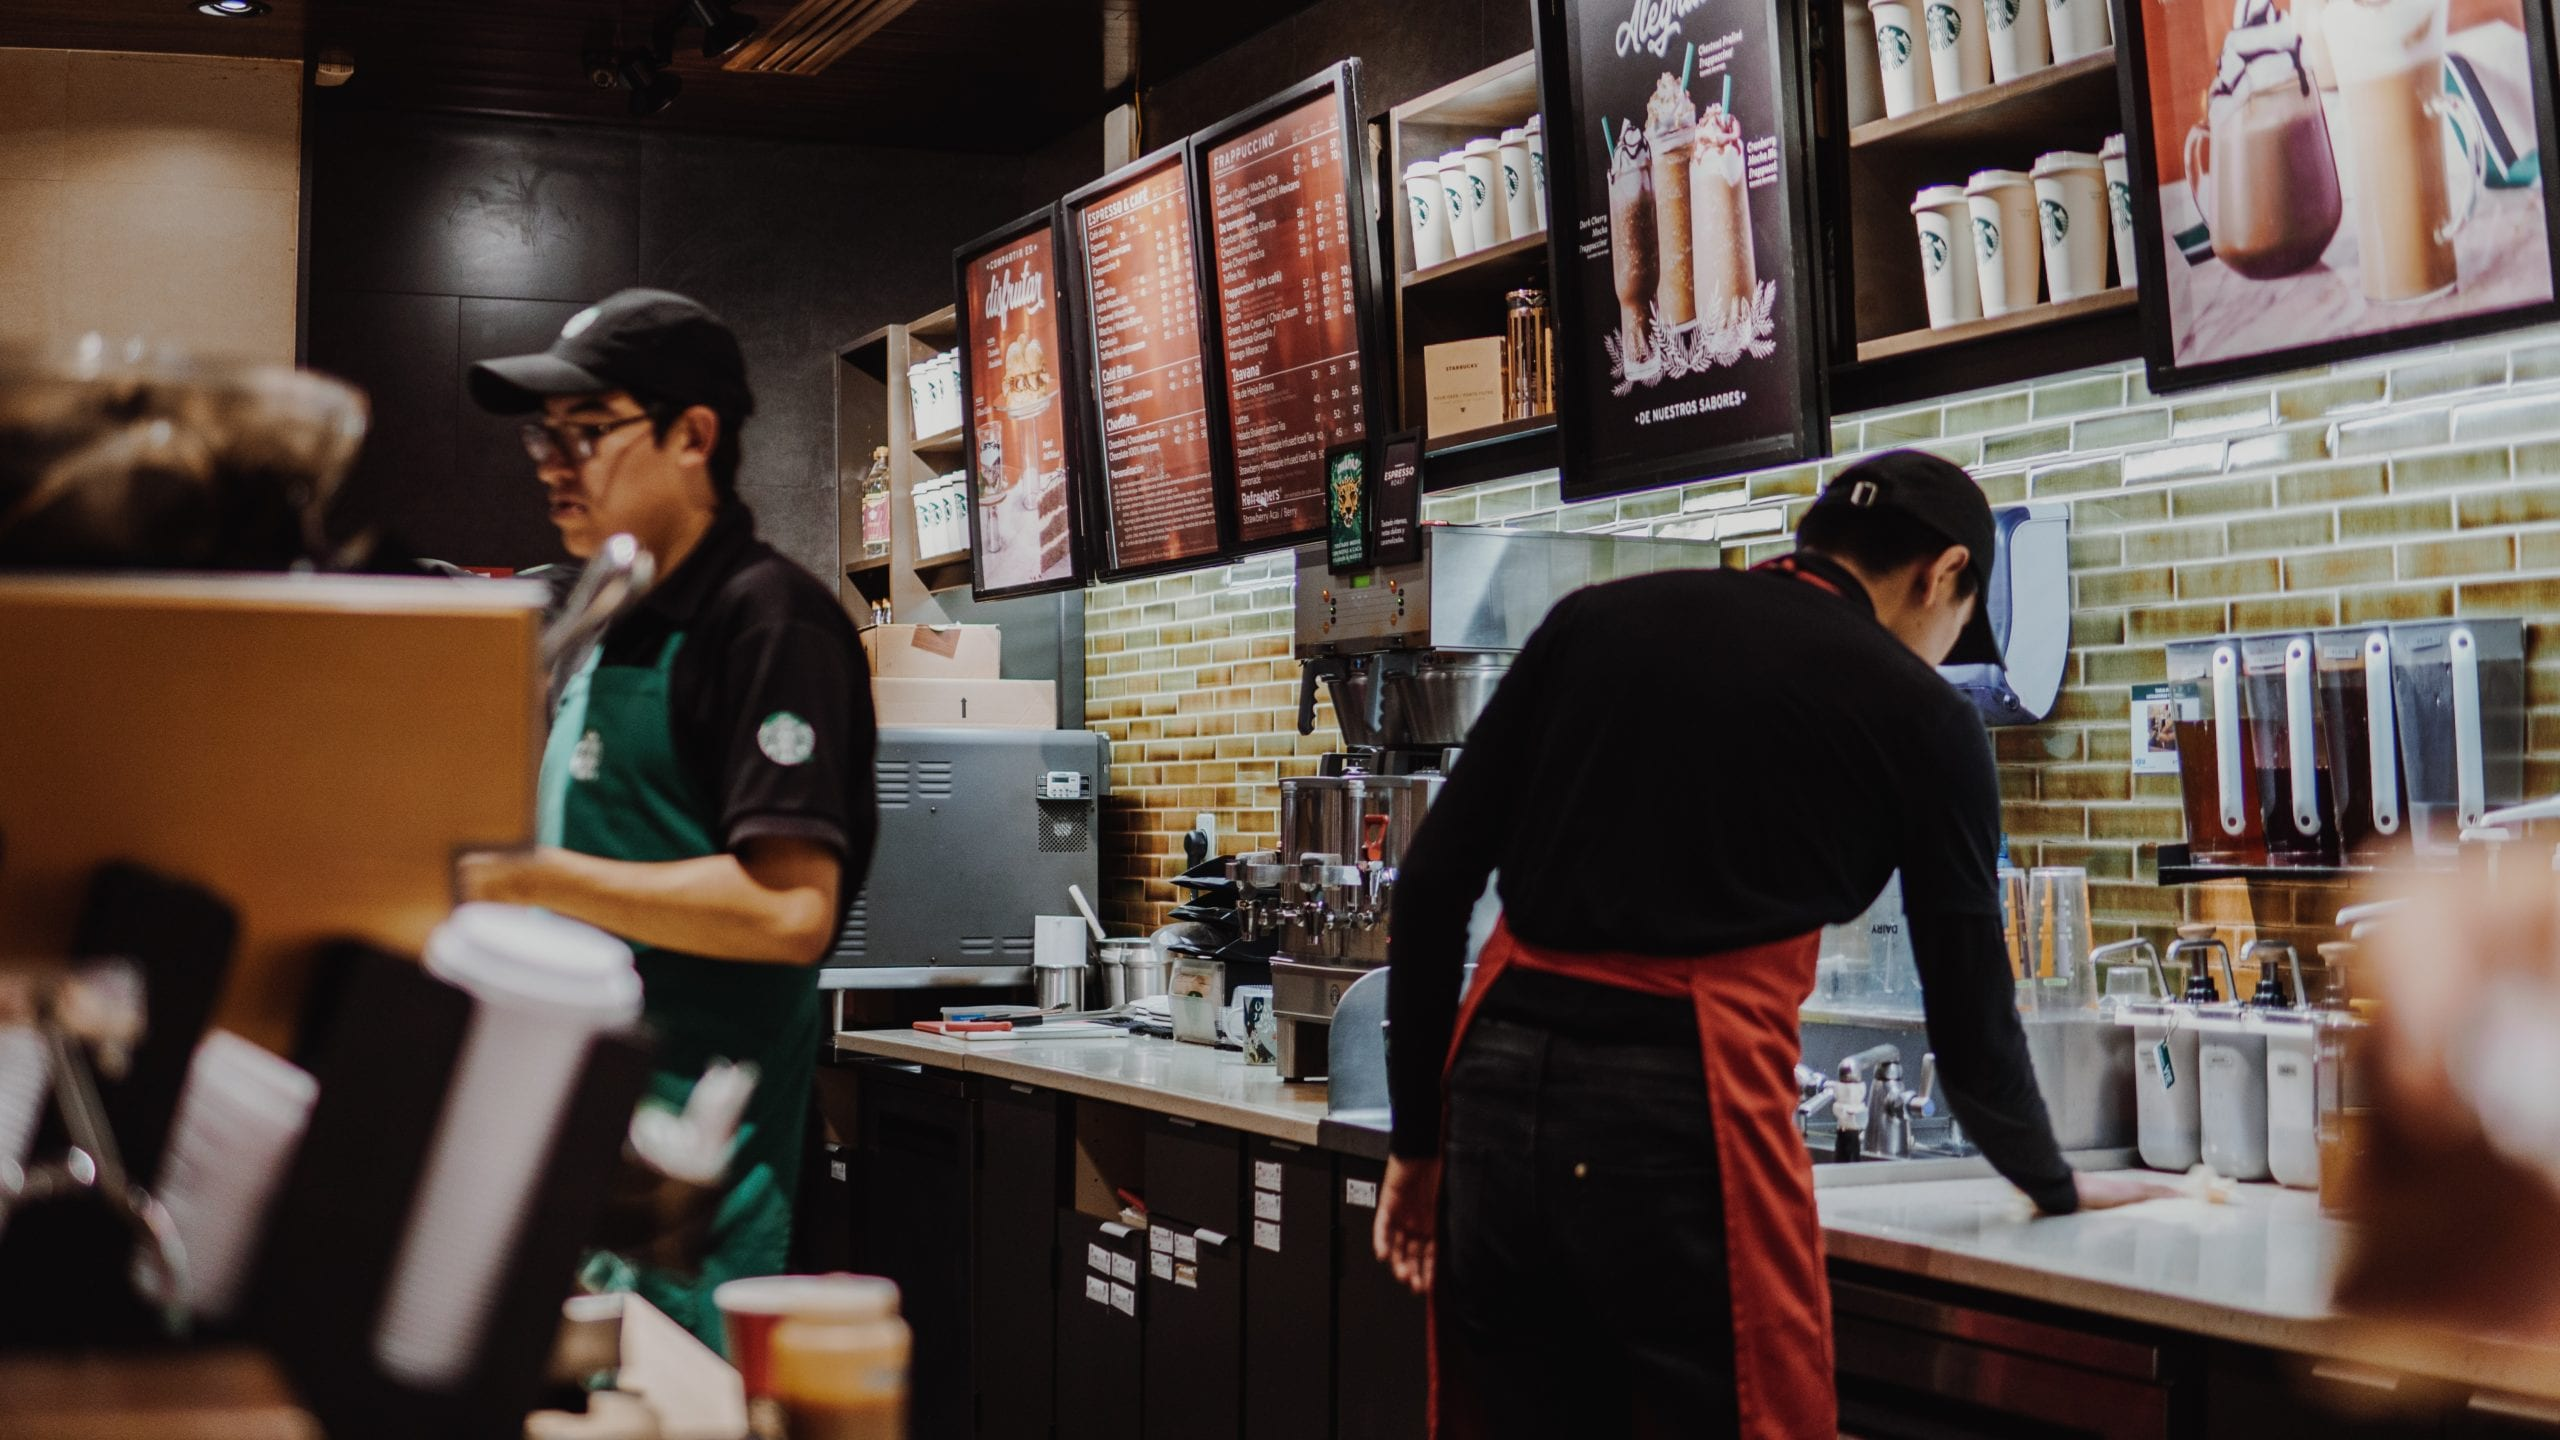 Starbucks Employees - Project Photo